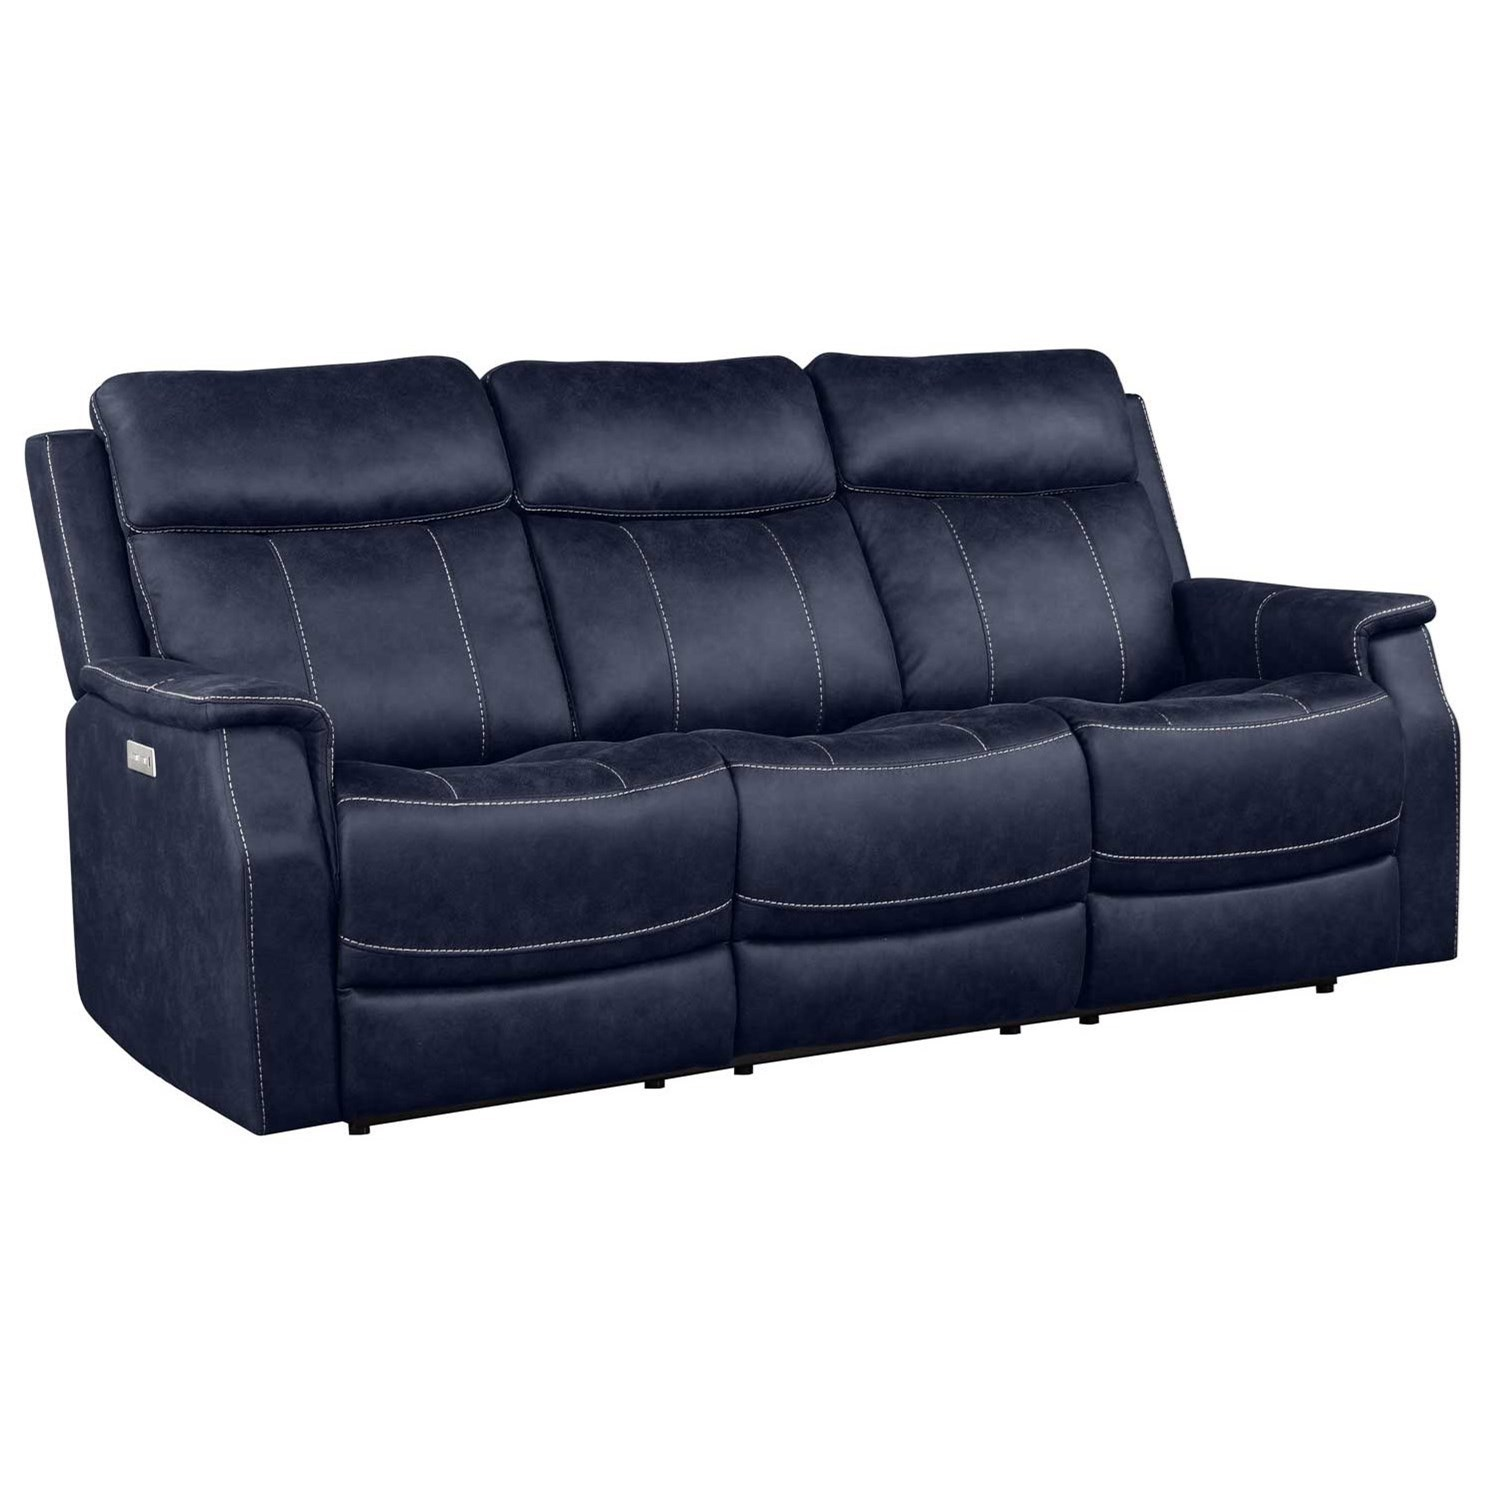 Valencia Power Reclining Sofa by Steve Silver at Northeast Factory Direct